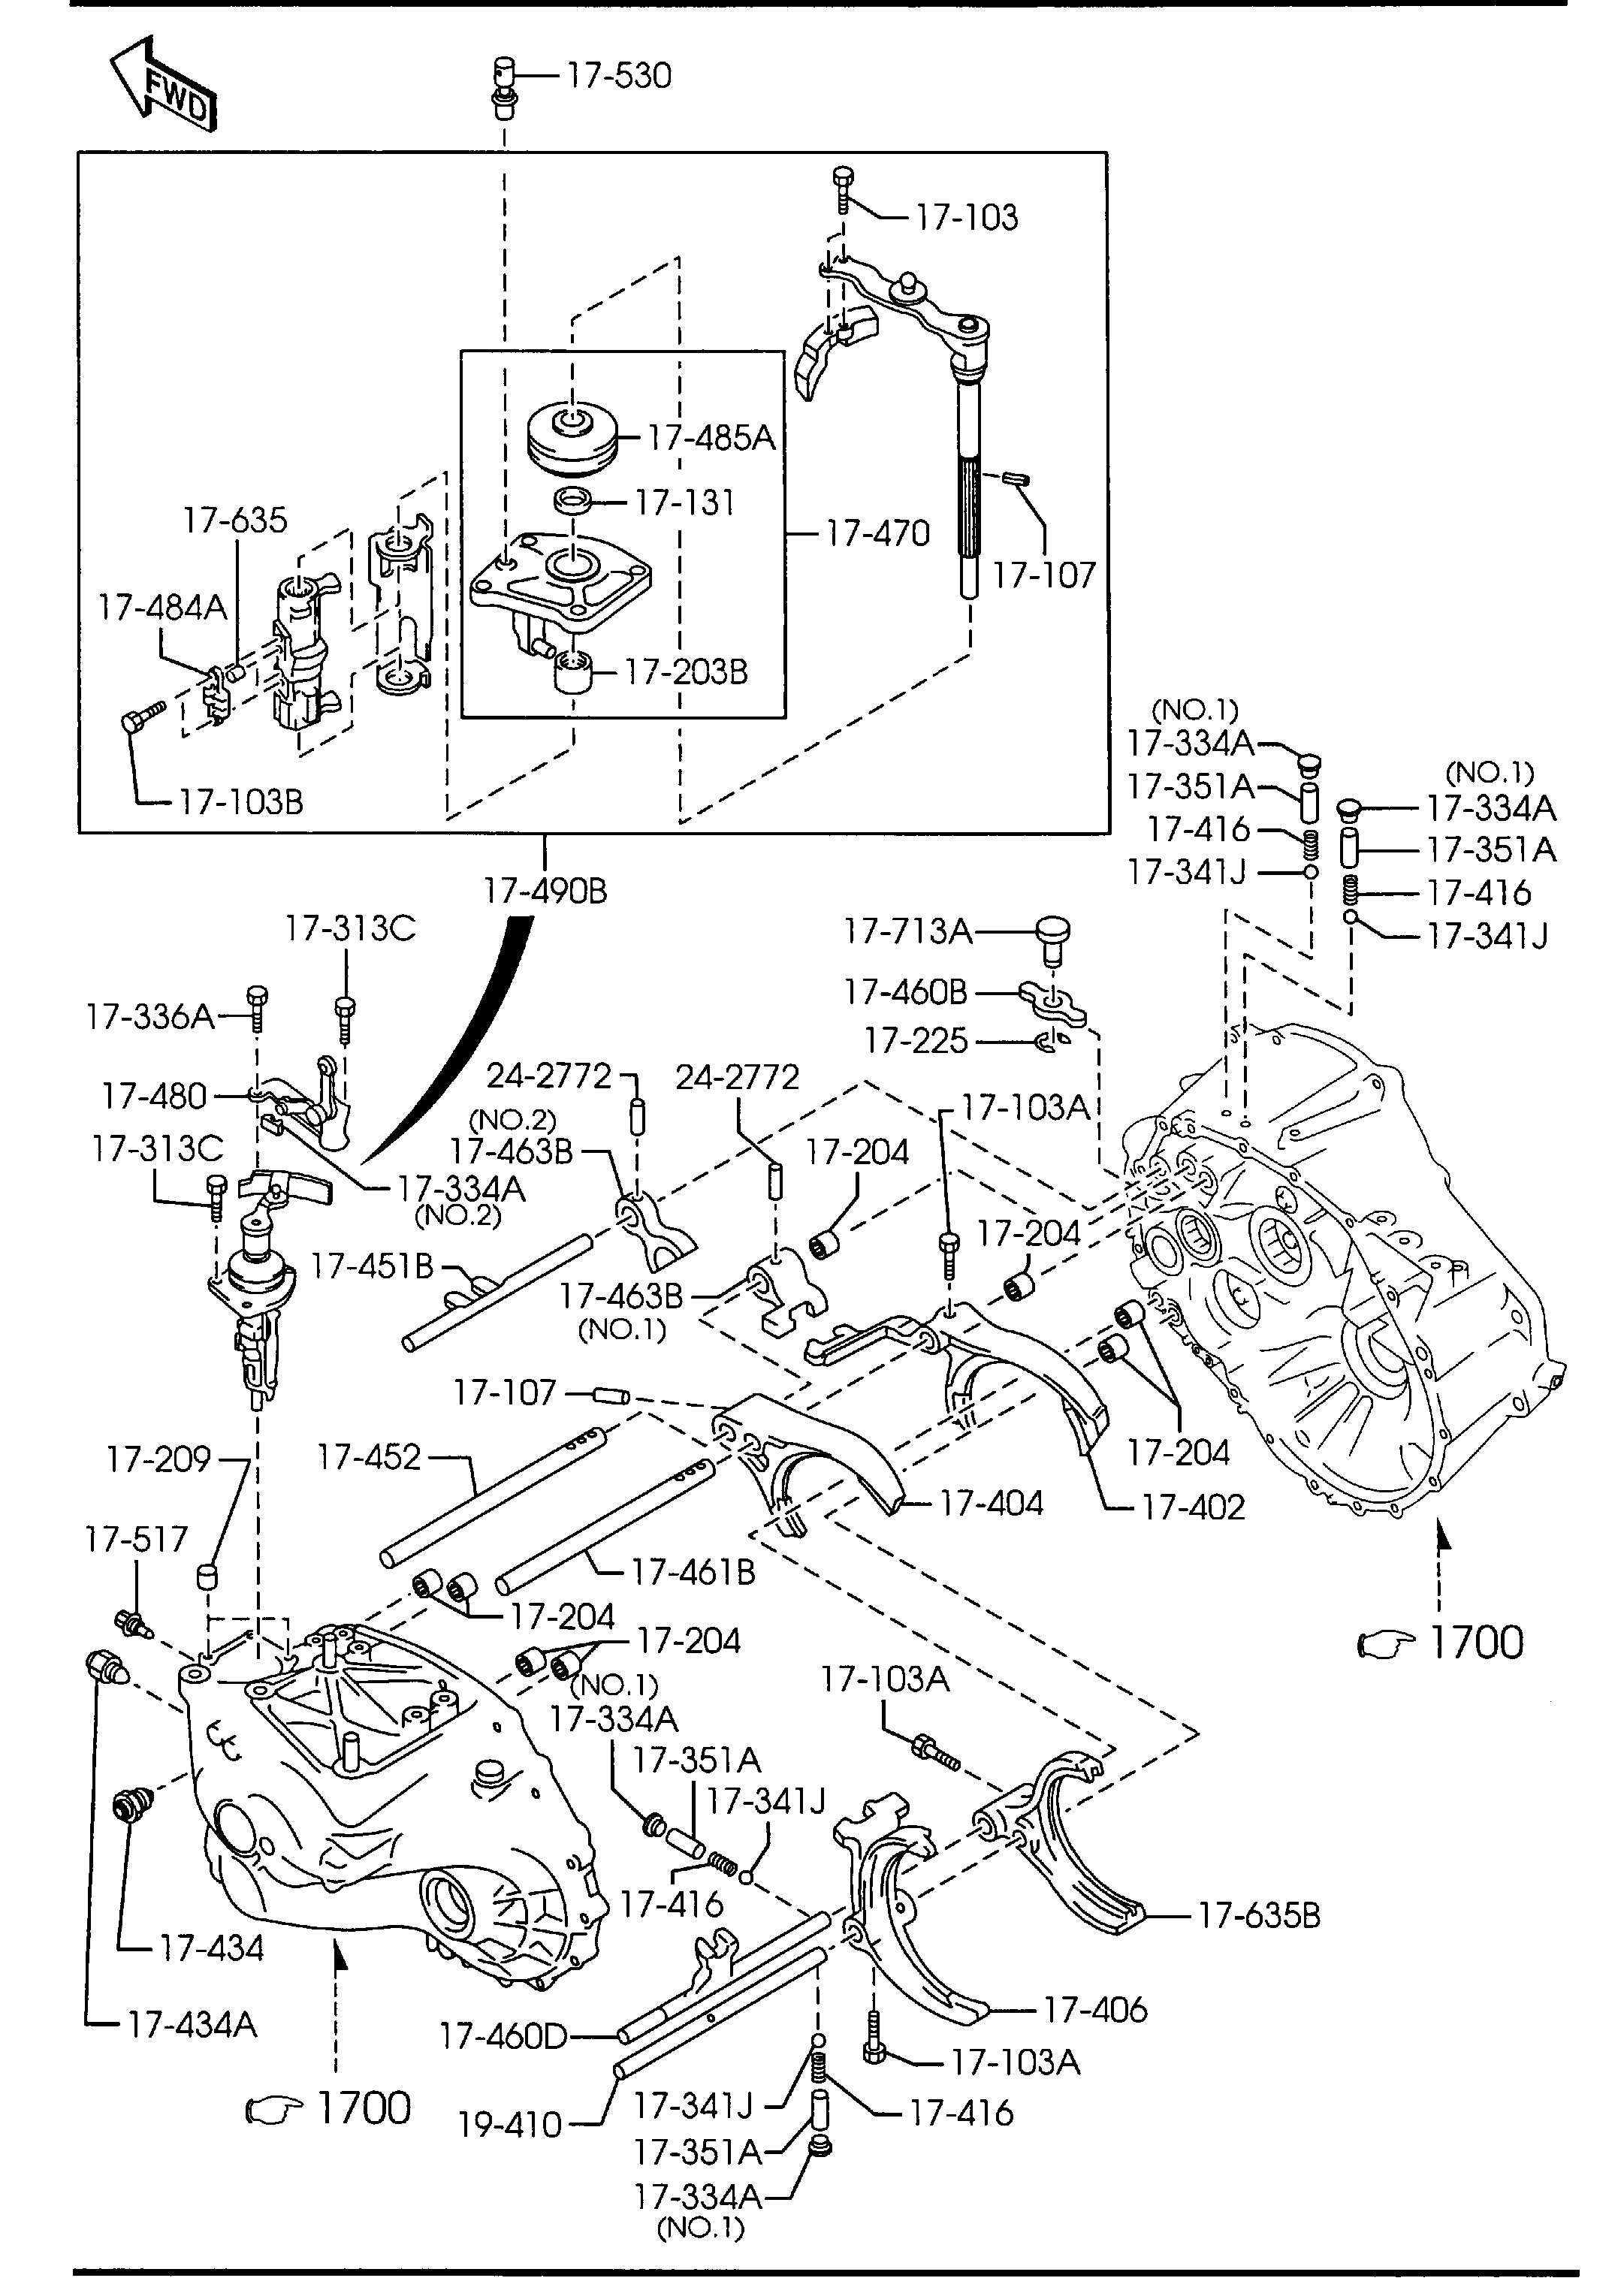 Mazda 3 MANUAL TRANSMISSION CHANGE CONTROL SYSTEM (6-SPEED